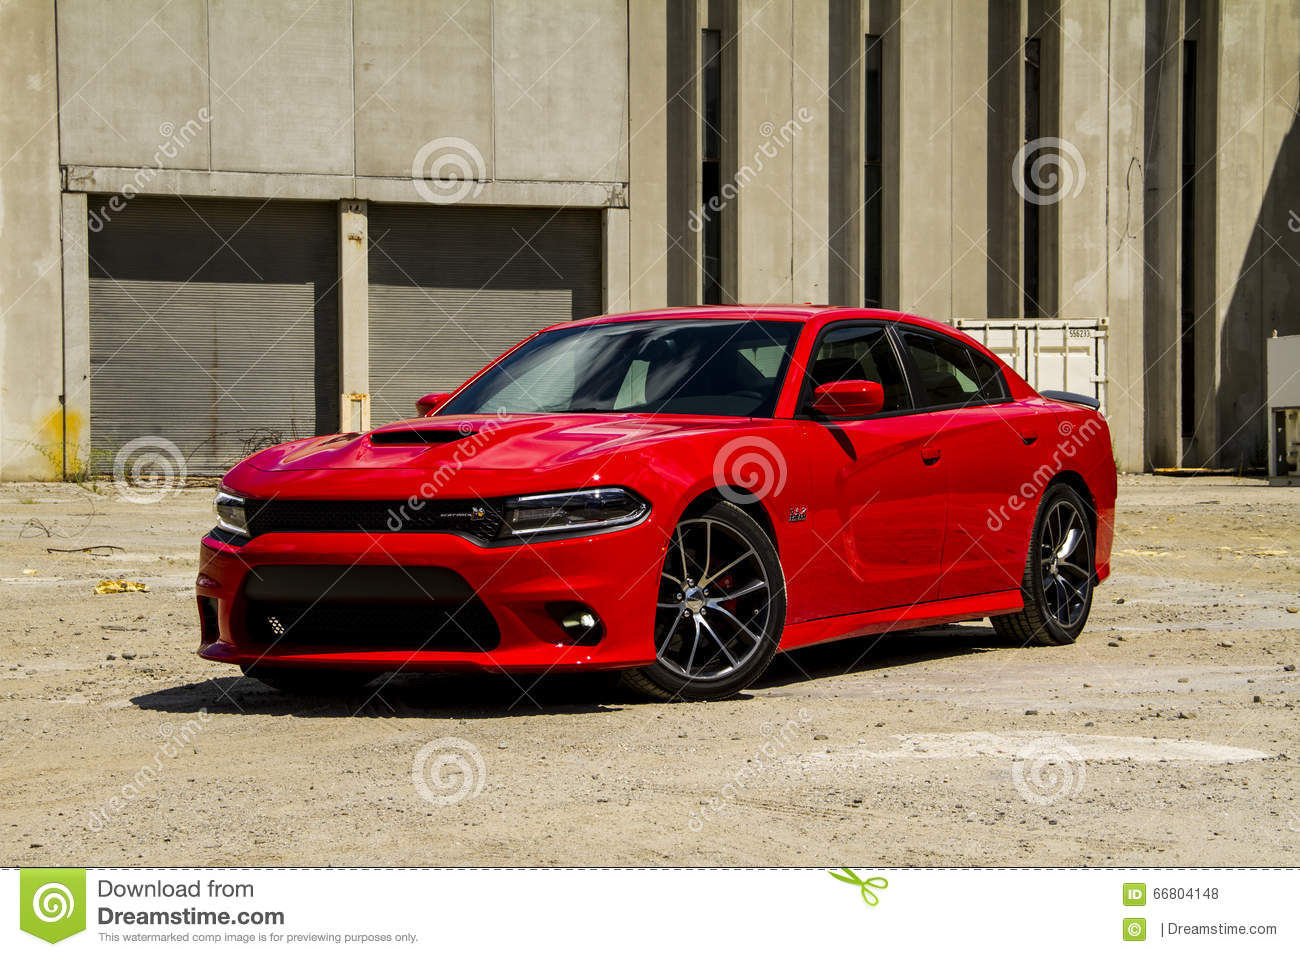 2015 2016 dodge charger r t scat pack editorial stock photo image of automotive scat 66804148. Black Bedroom Furniture Sets. Home Design Ideas